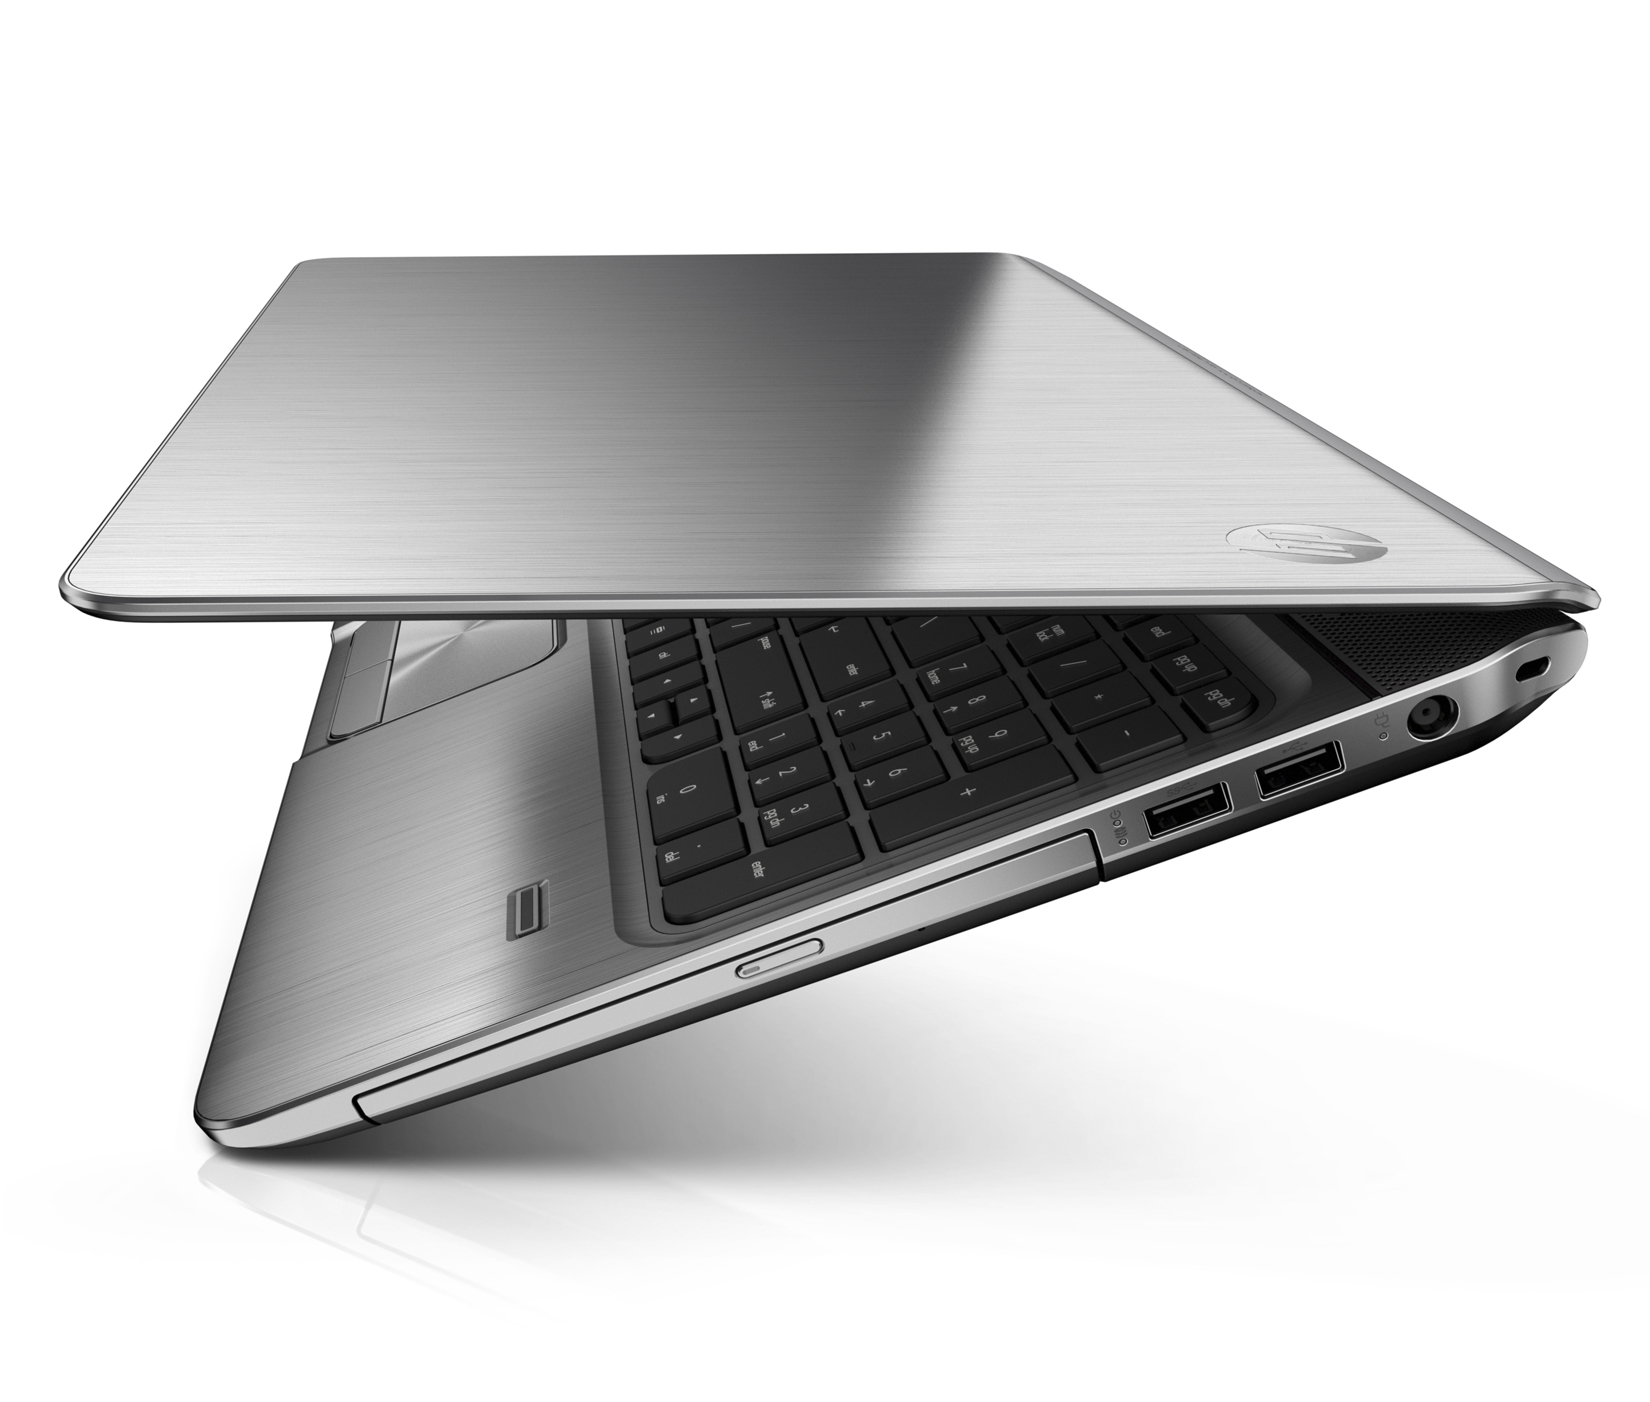 HP Pavilion m6 HERO